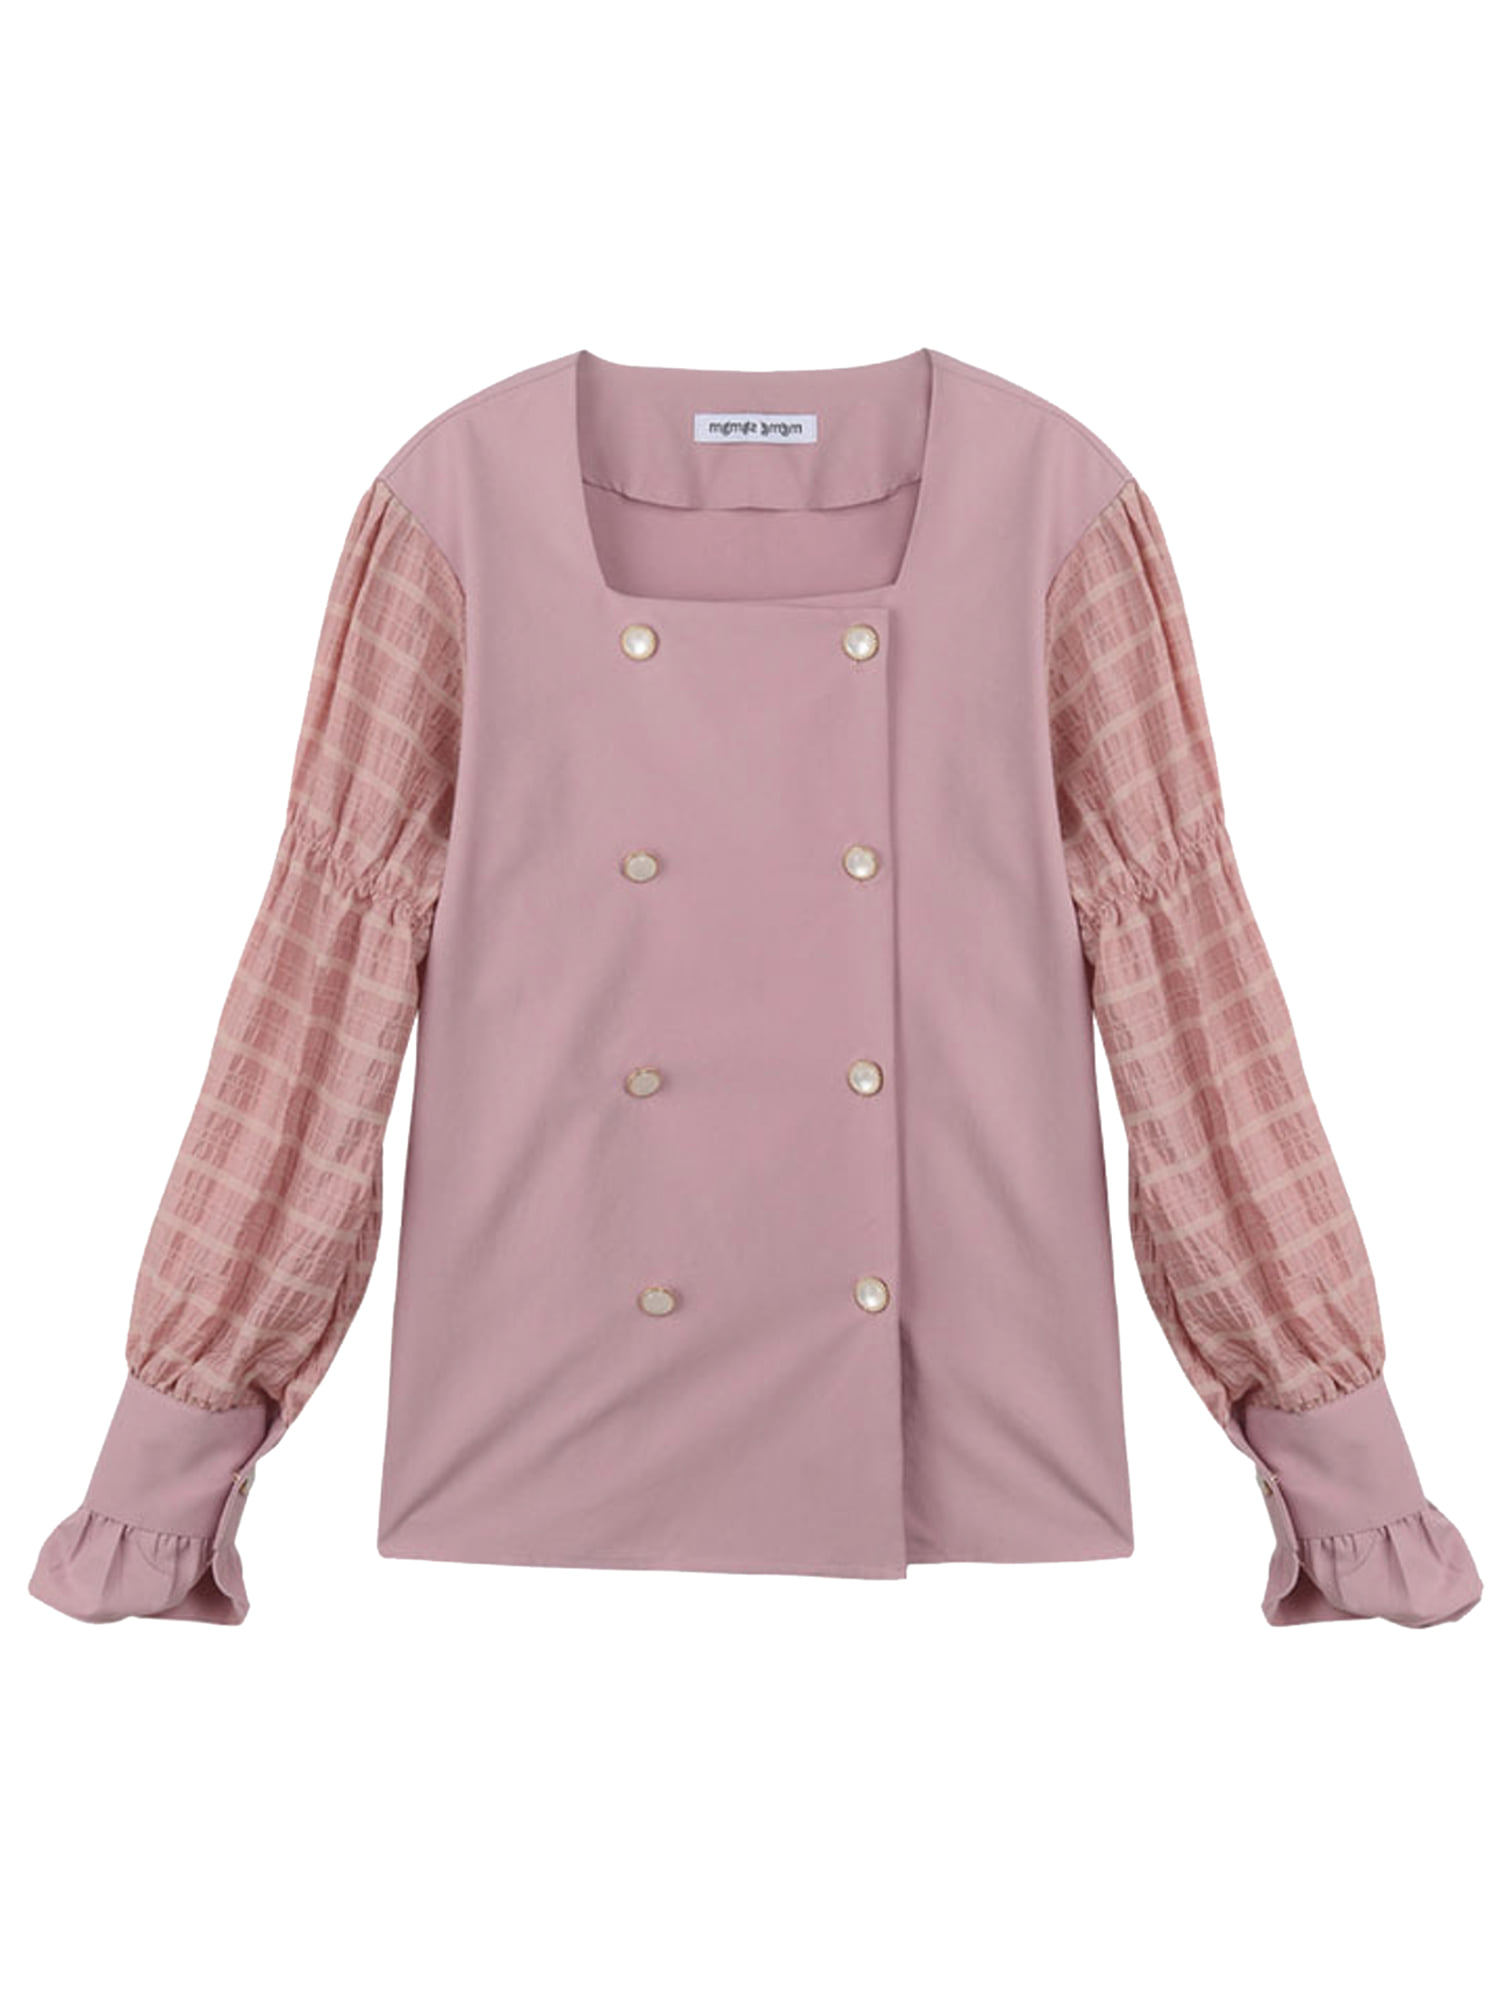 double button blouse_pink